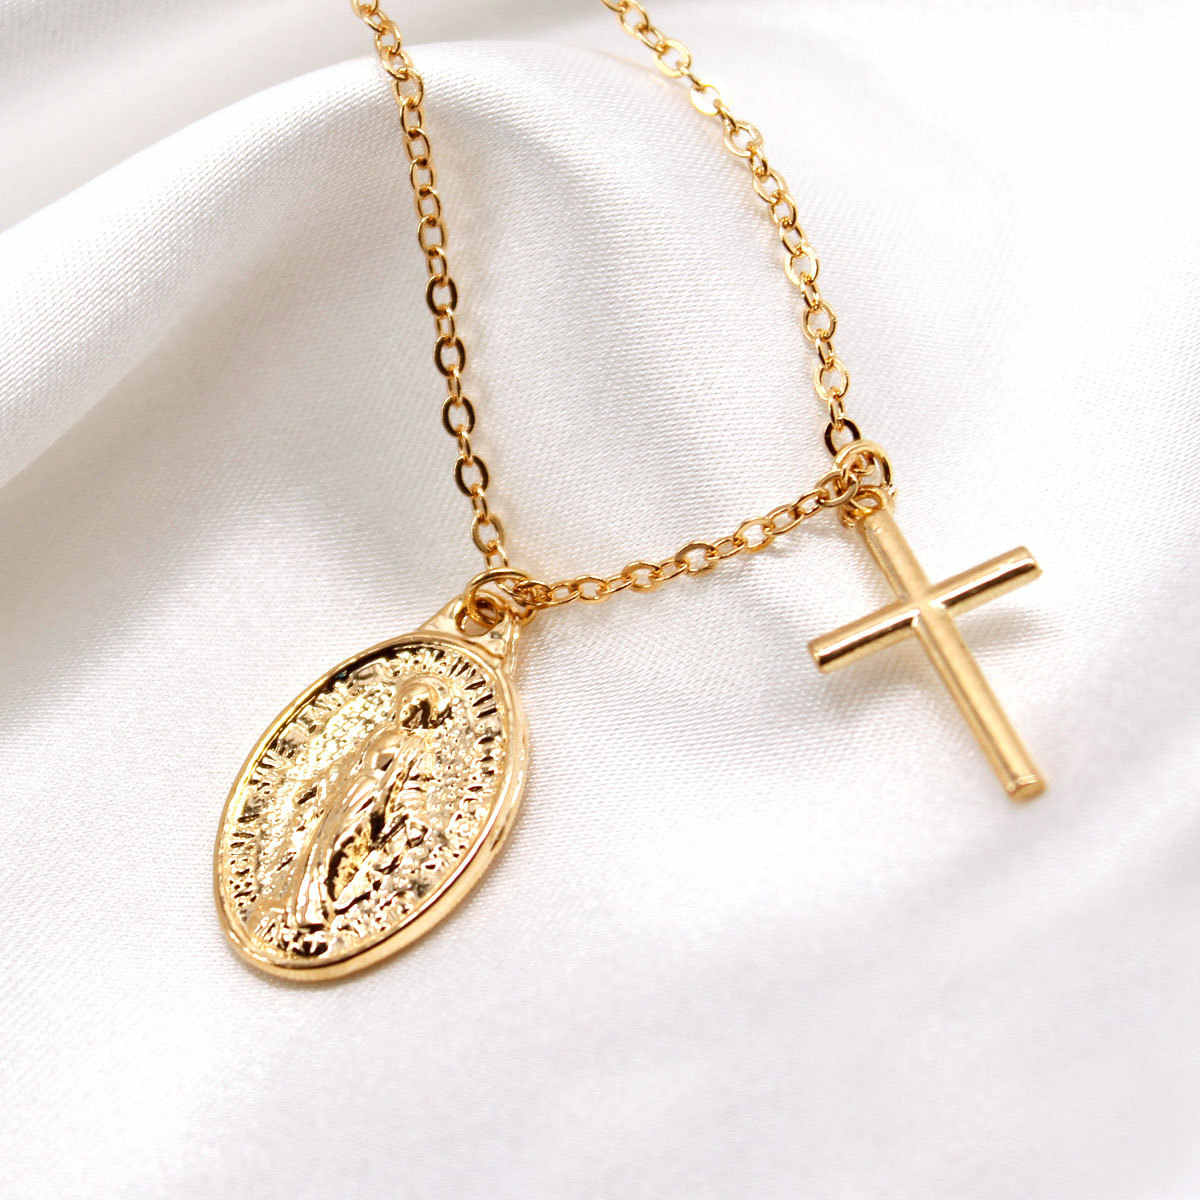 Simple Long Chain Virgin Mary Necklace Female Pendants Clavicle Choker Necklace Collares Jewelry